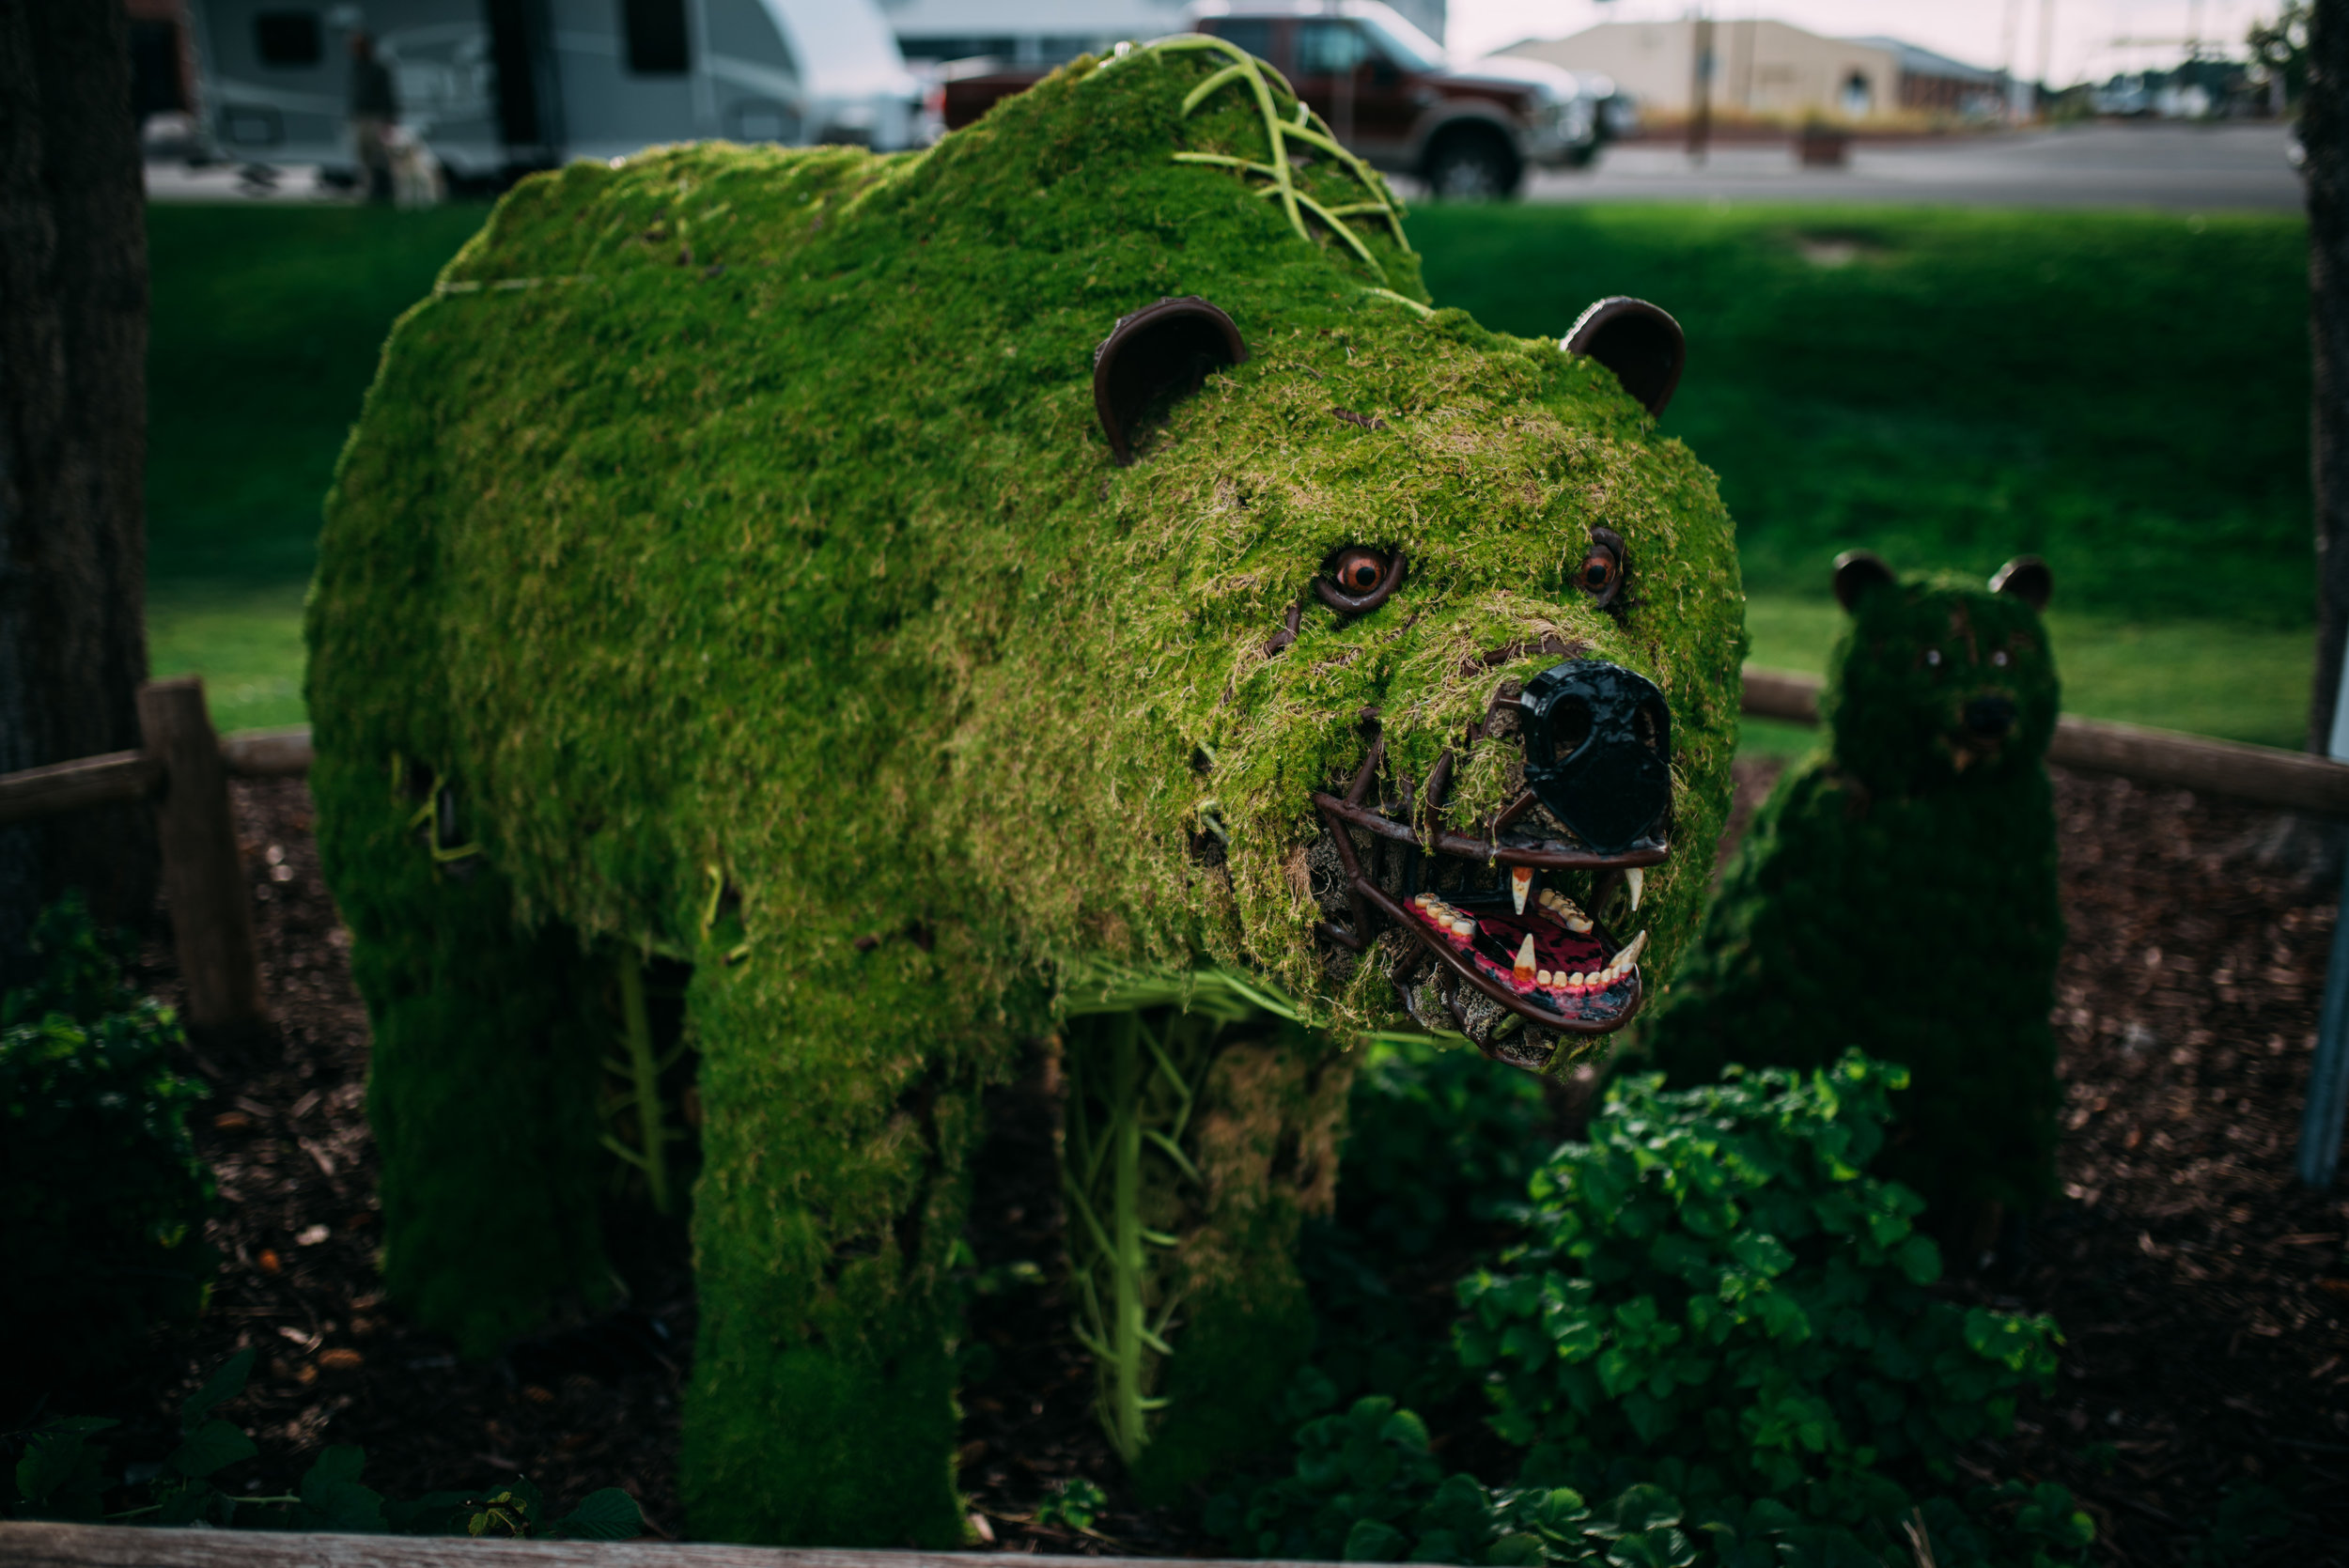 The city has multiple animal sculptures completed by a mossy green outer skin. Really neat!